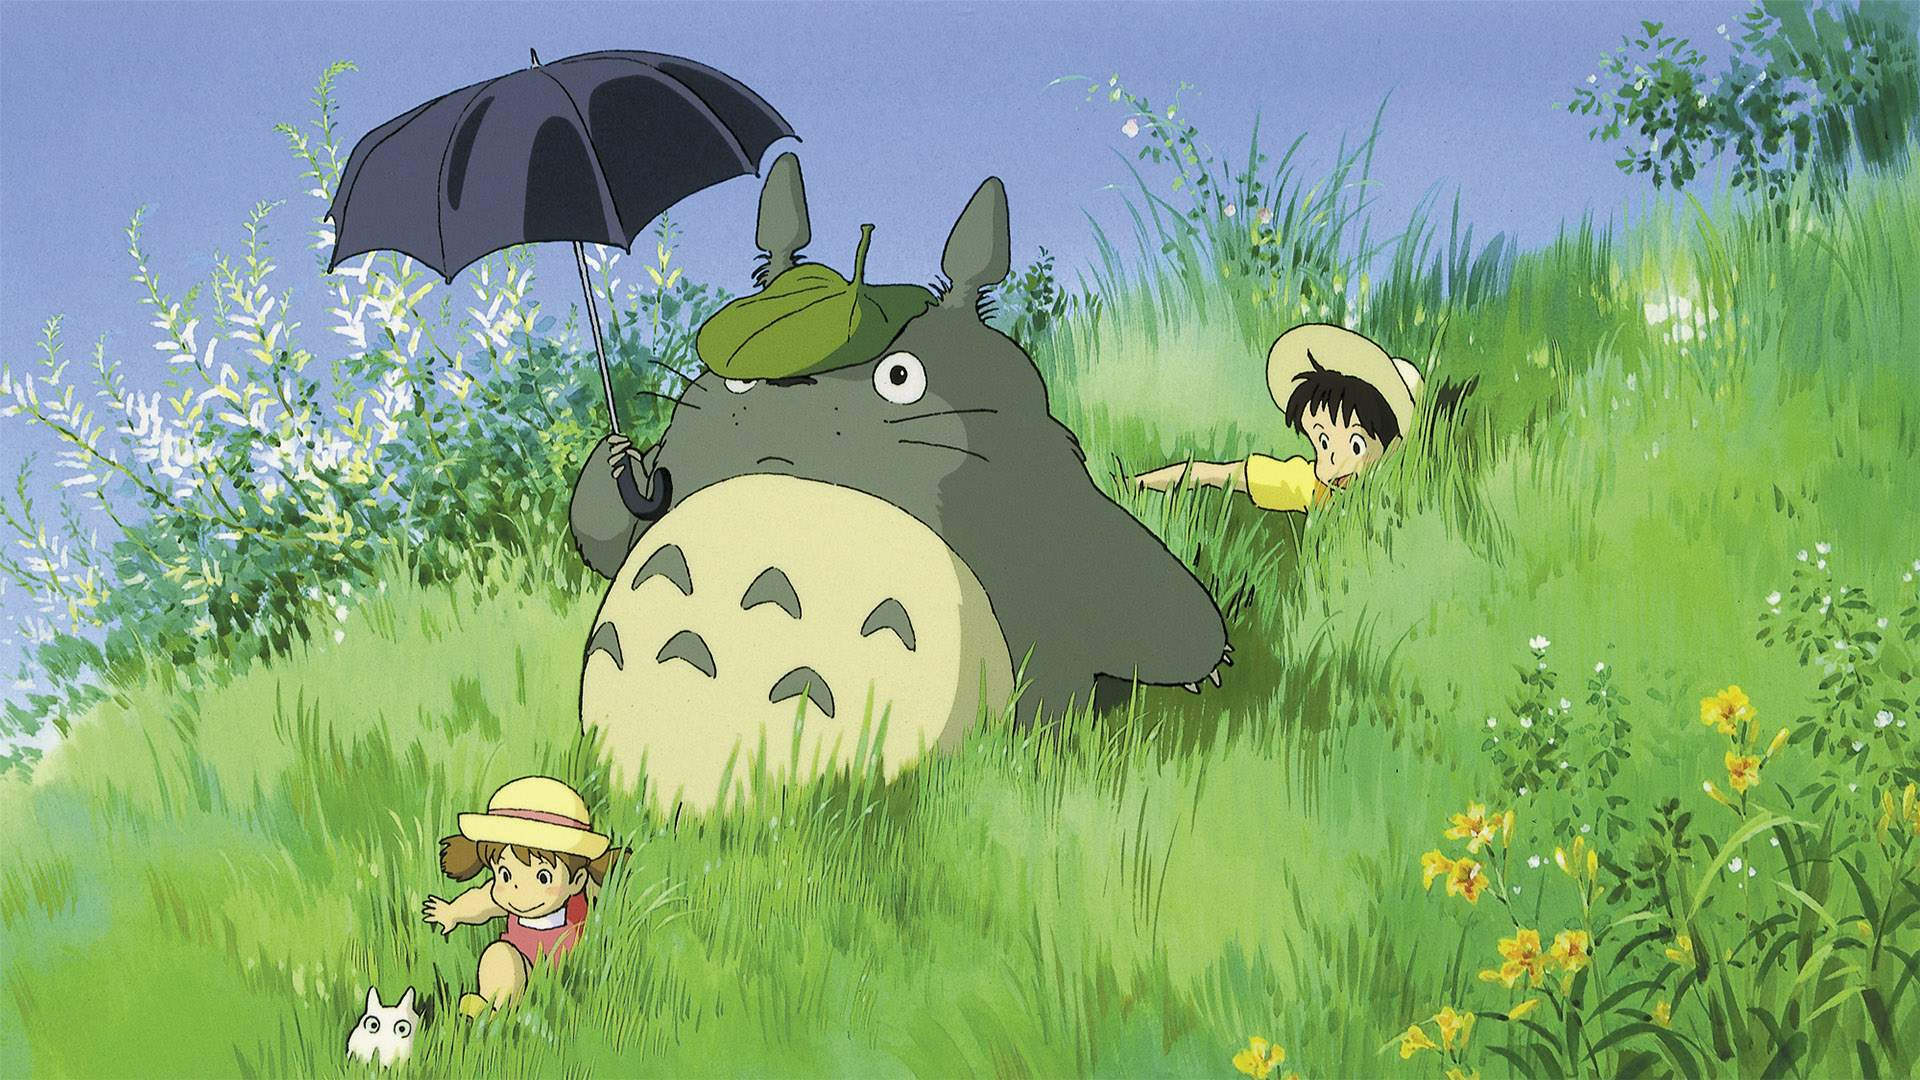 35 Years of Studio Ghibli